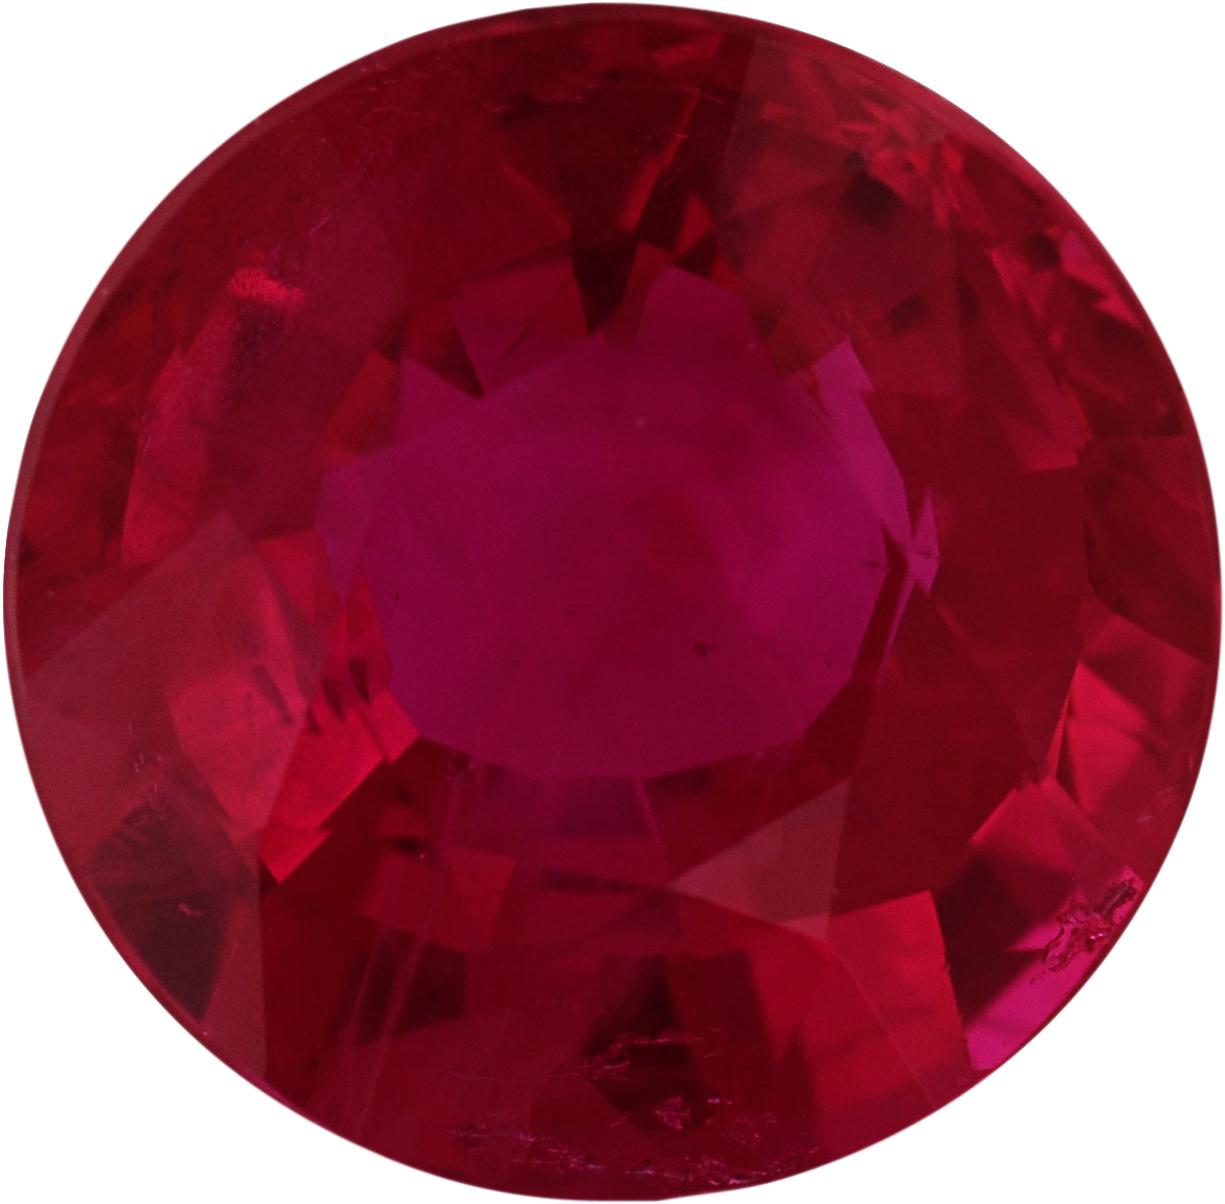 Bright & Lively Loose Ruby Gem in Round Cut, Vivid  Red Color, 6.02 mm, 1.05 carats